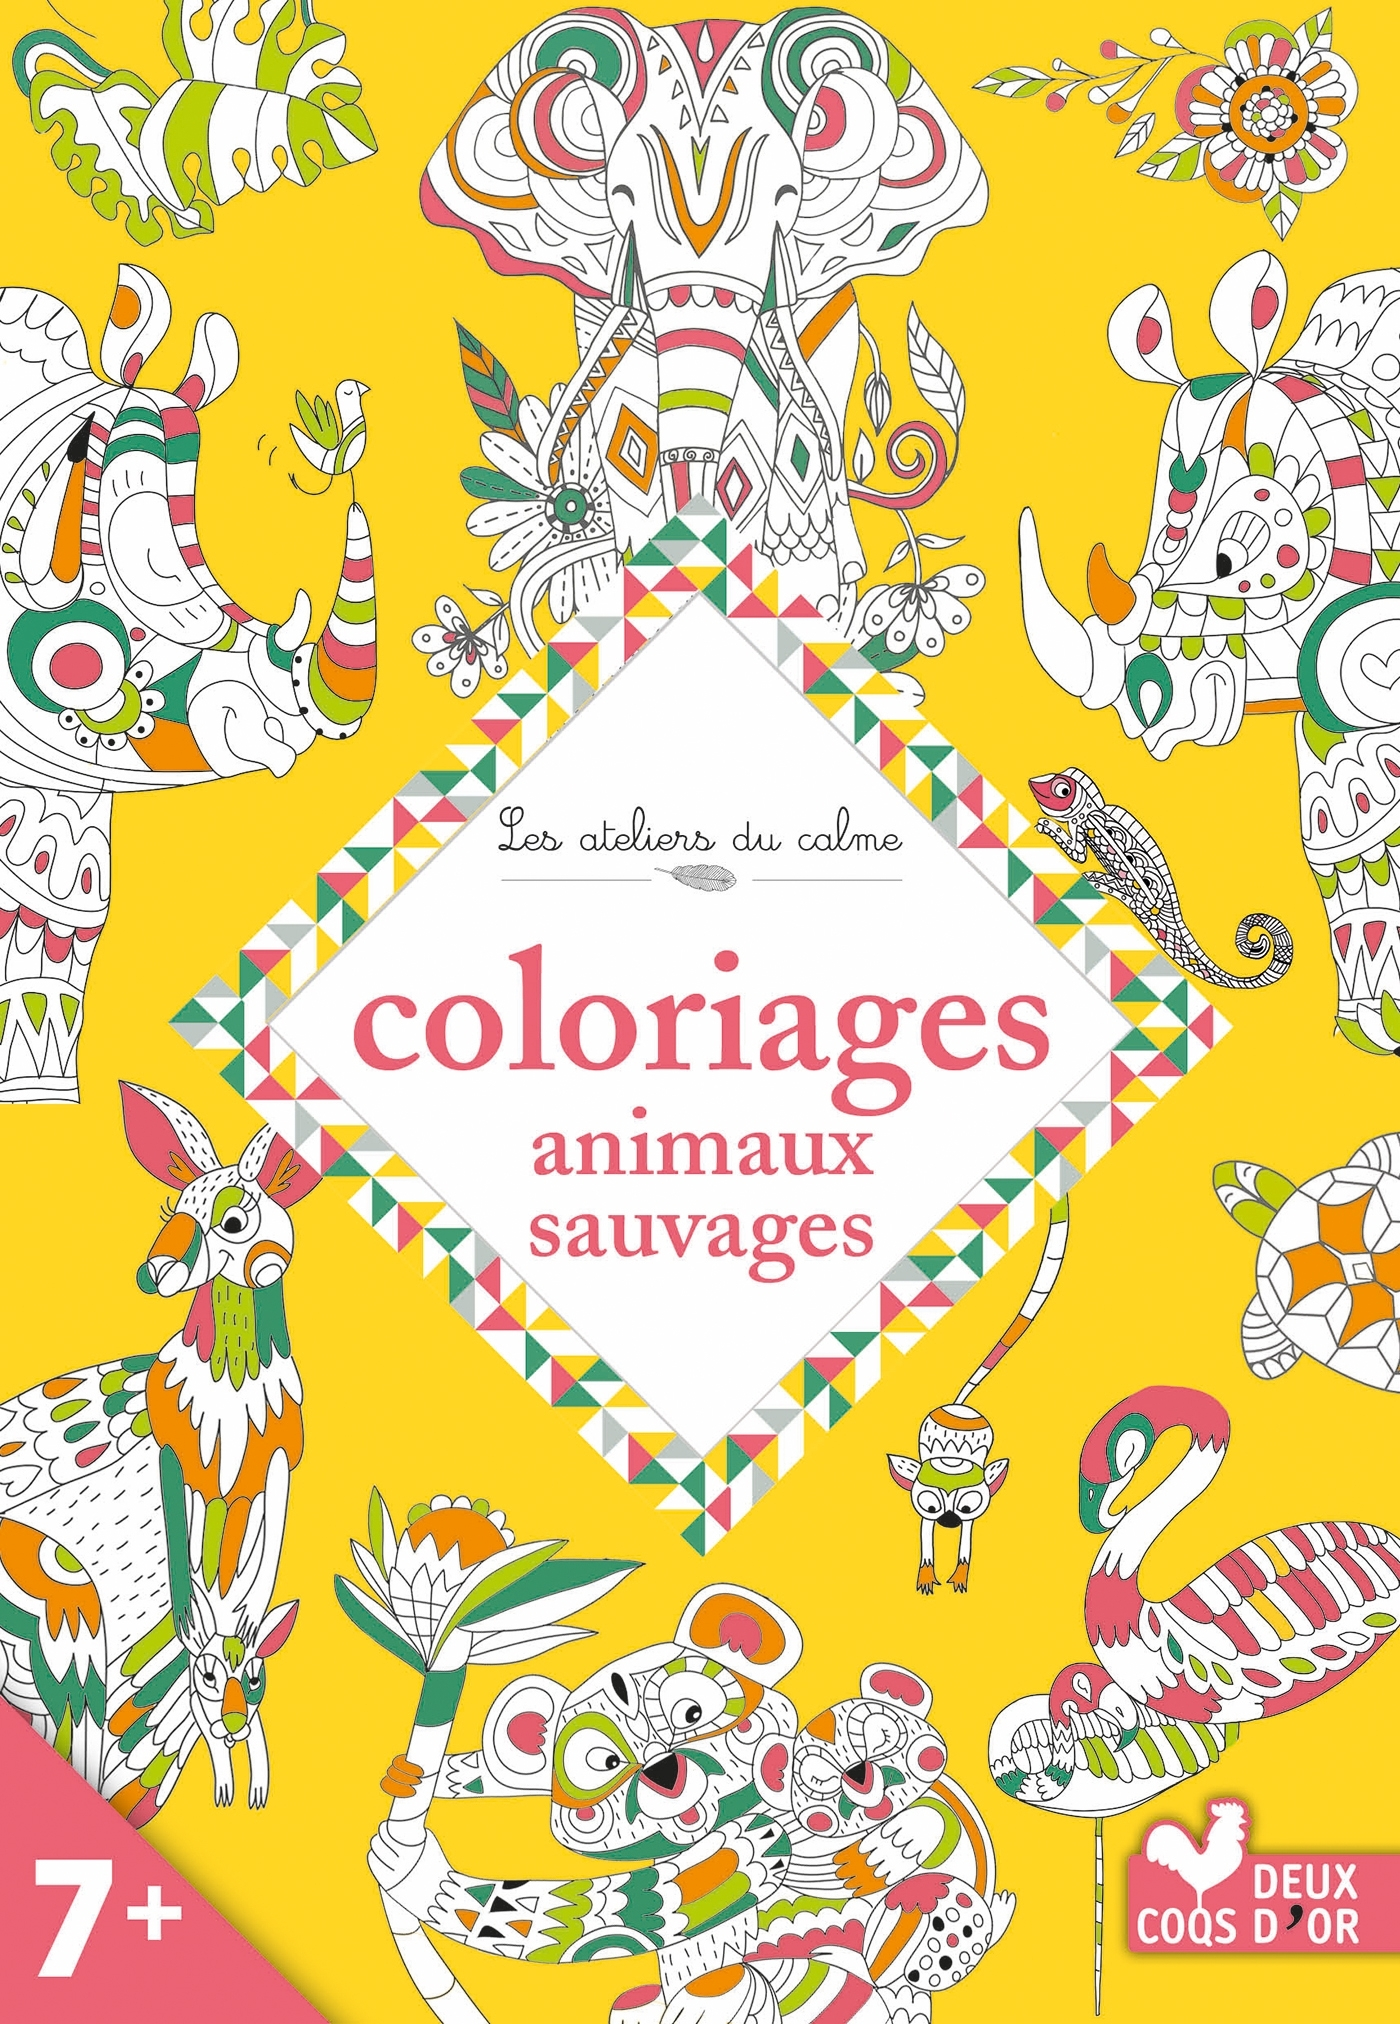 COLORIAGES - ANIMAUX SAUVAGES